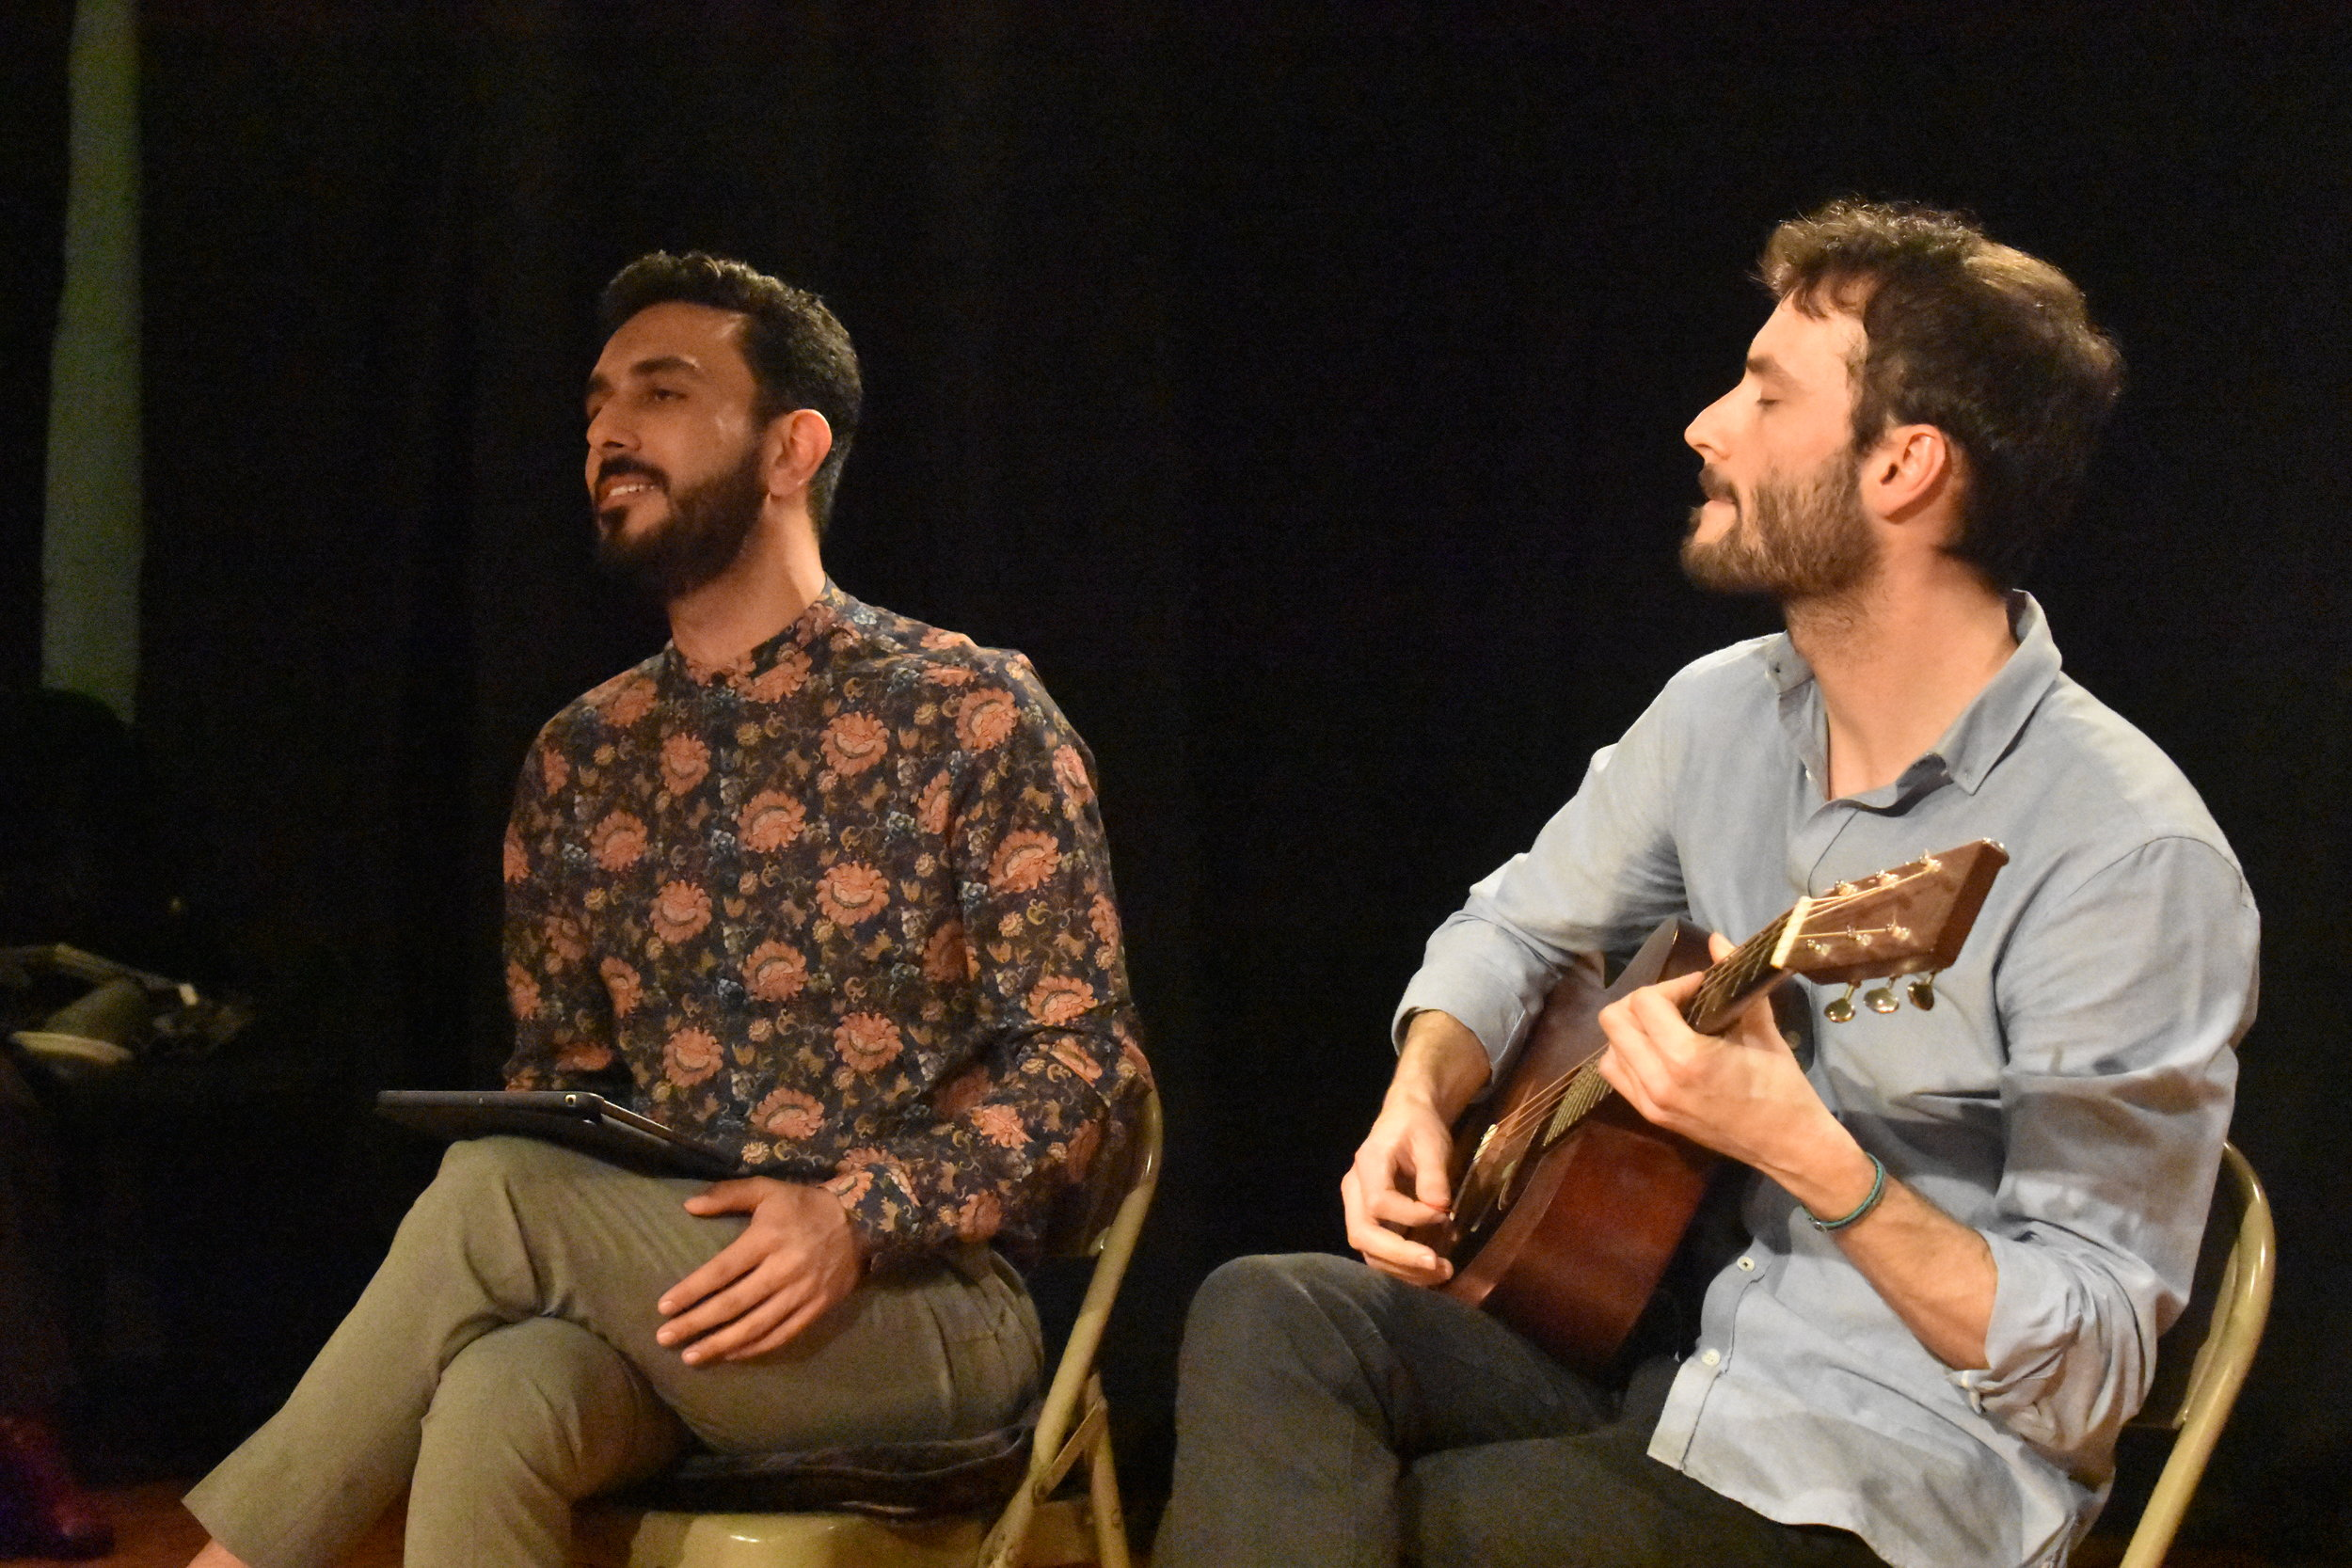 Gilad Barakan and Parham Haghighi sing Persian and Israeli songs. Photo by Mollie Block